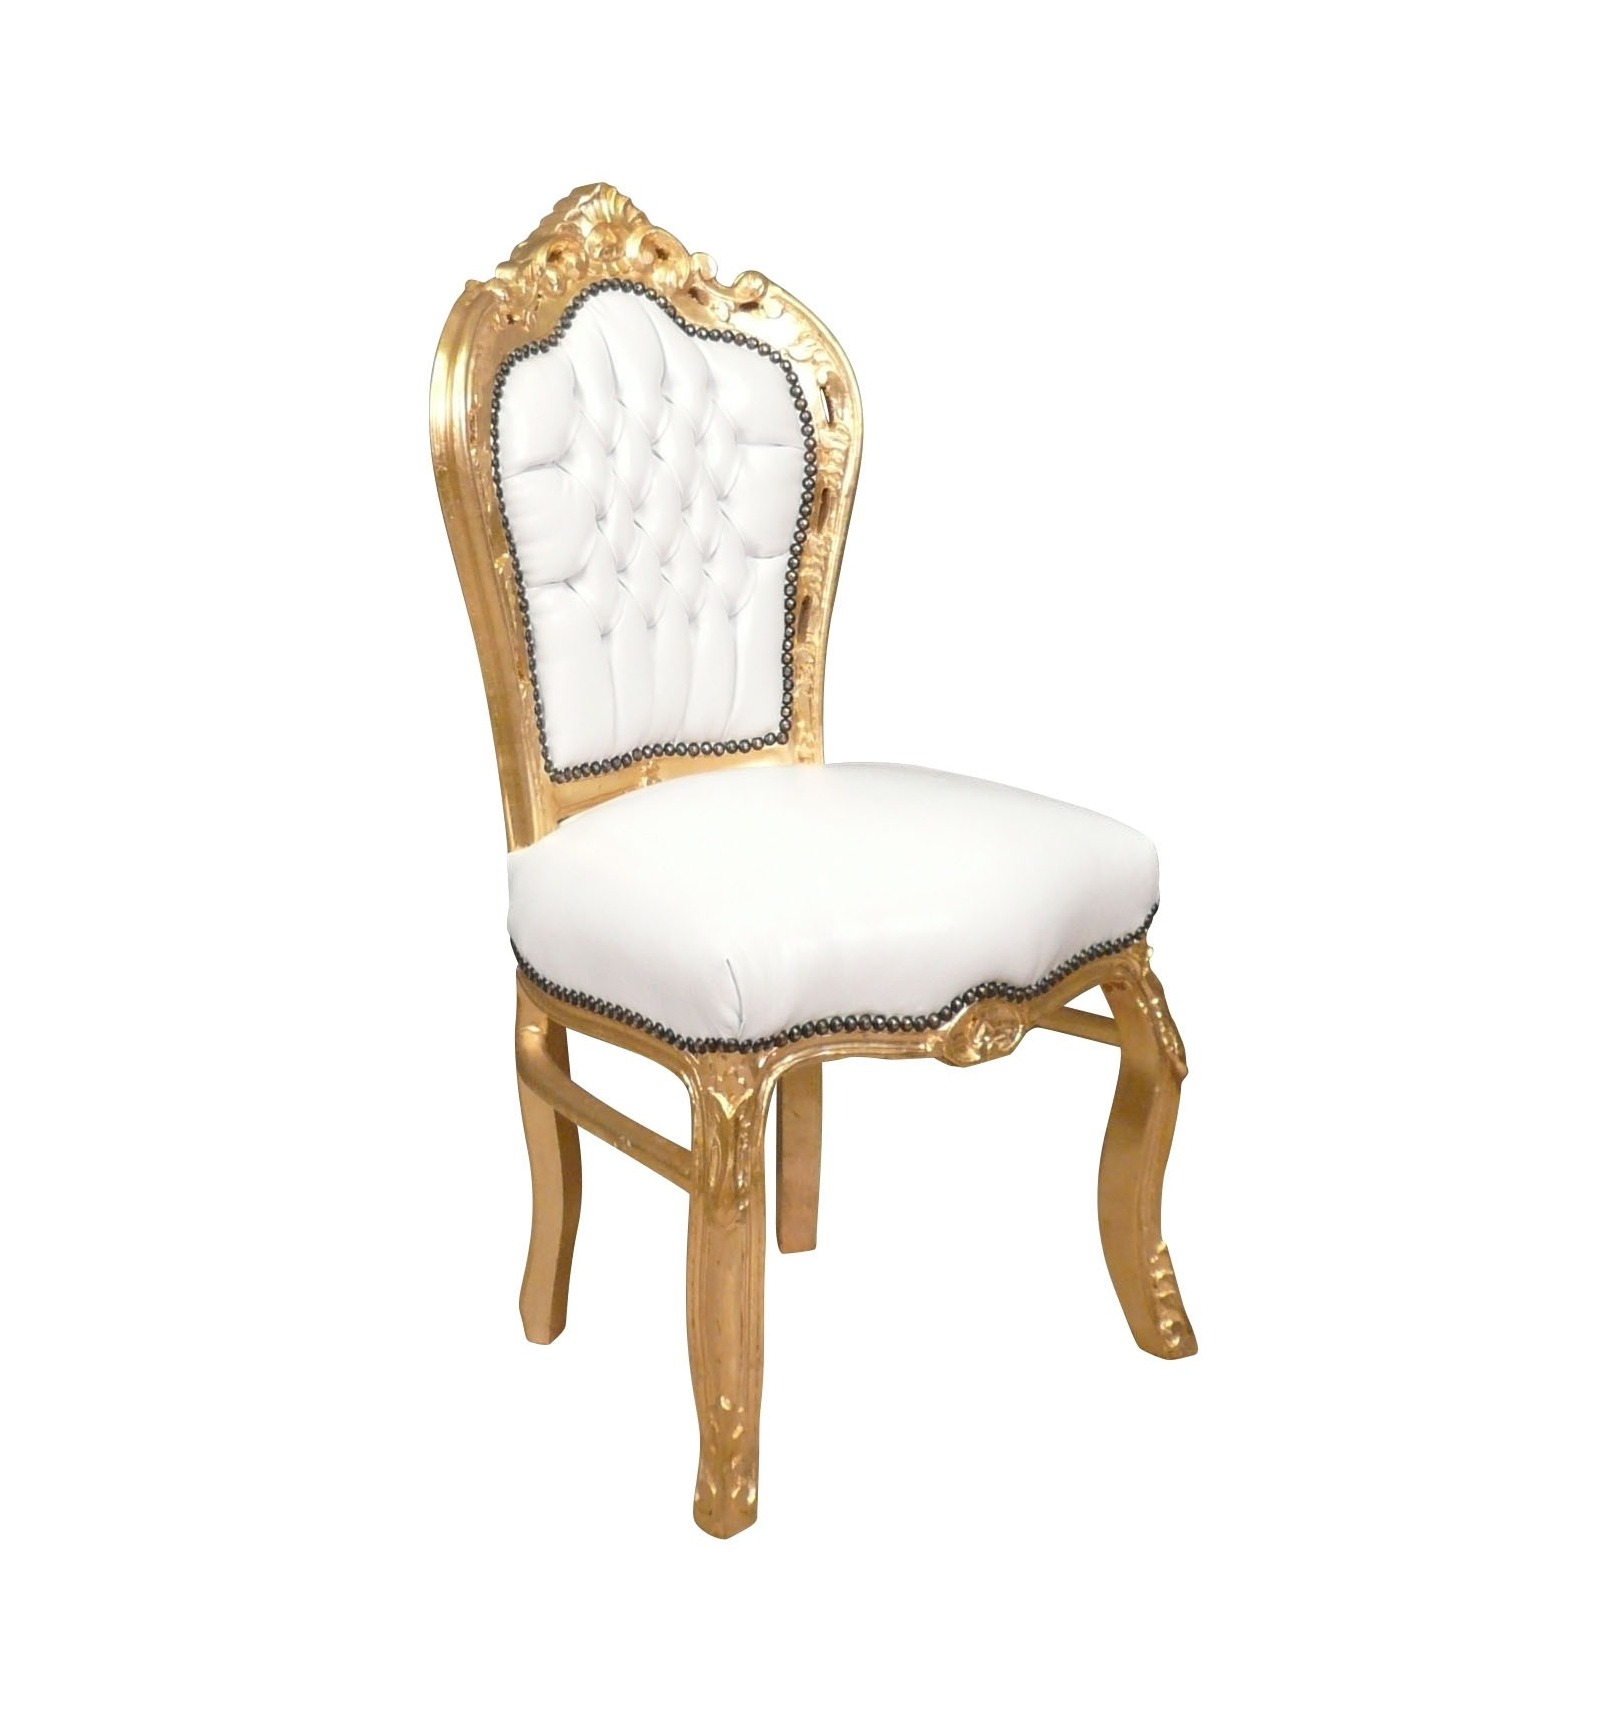 Chaise baroque banche et or fauteuil - Chaise baroque blanche ...